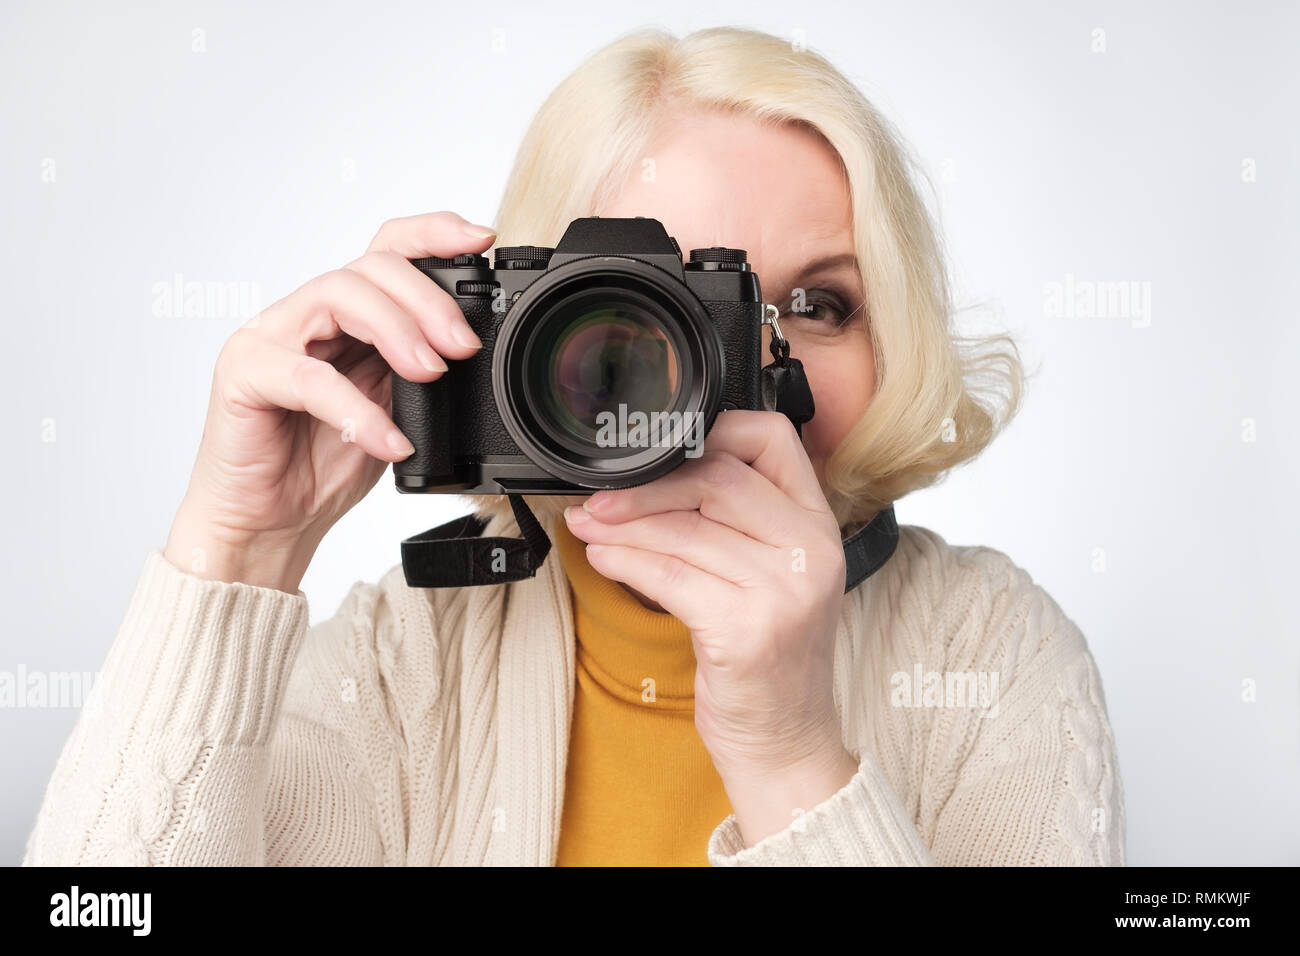 Senior blonde woman taking photo with camera - Stock Image